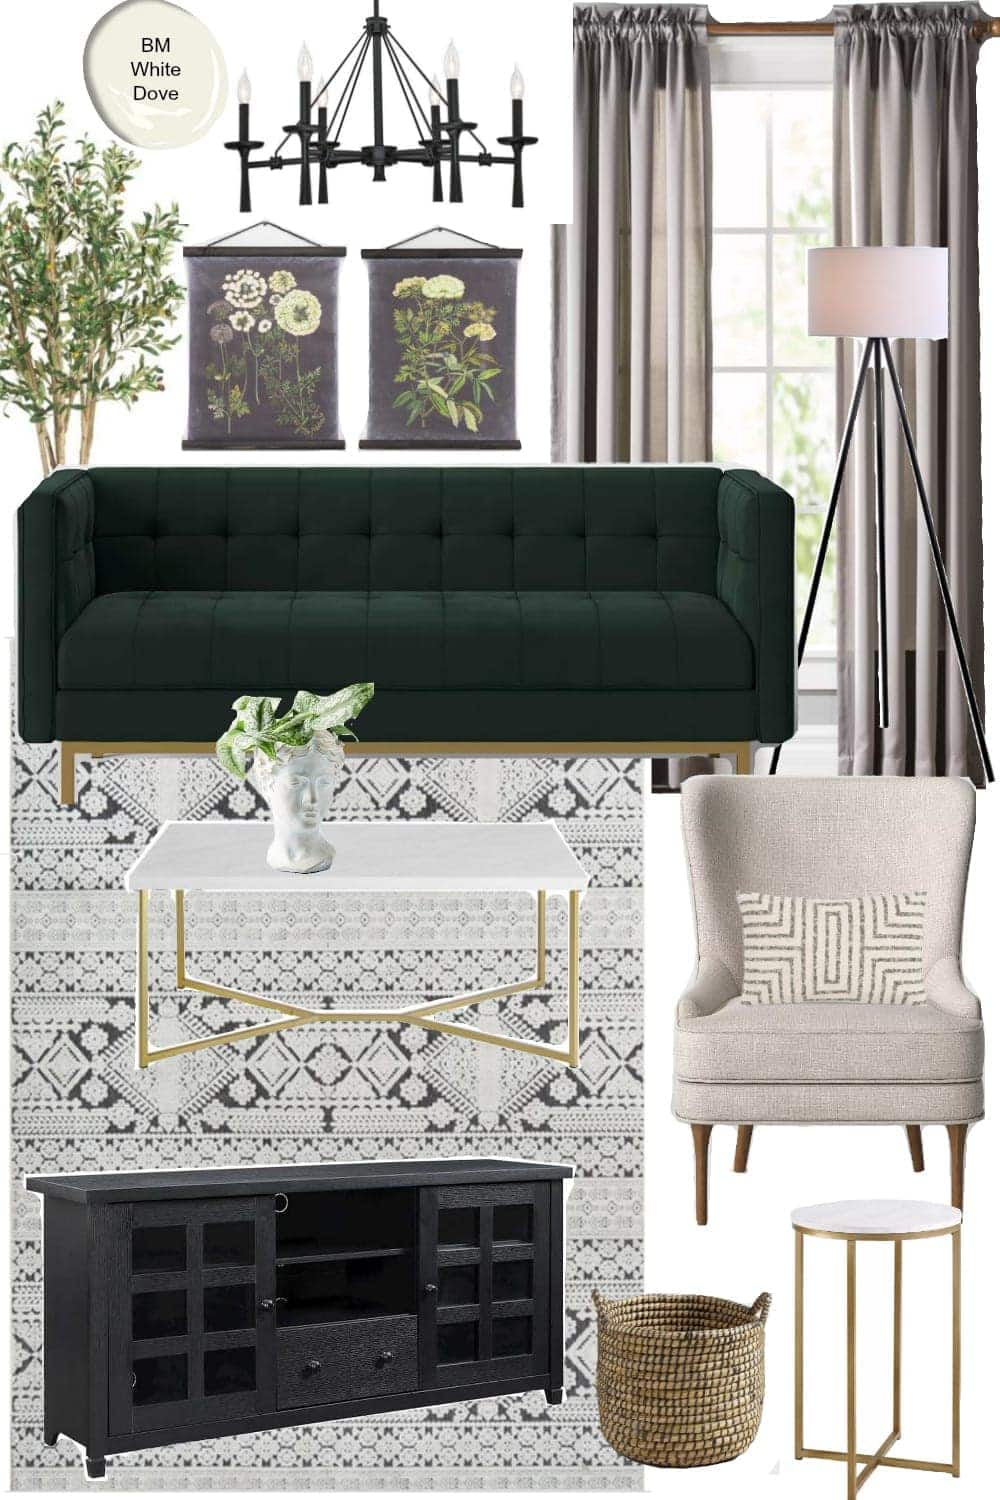 3 Living Room Design Mood Boards Under $2,000 | Vintage Glam